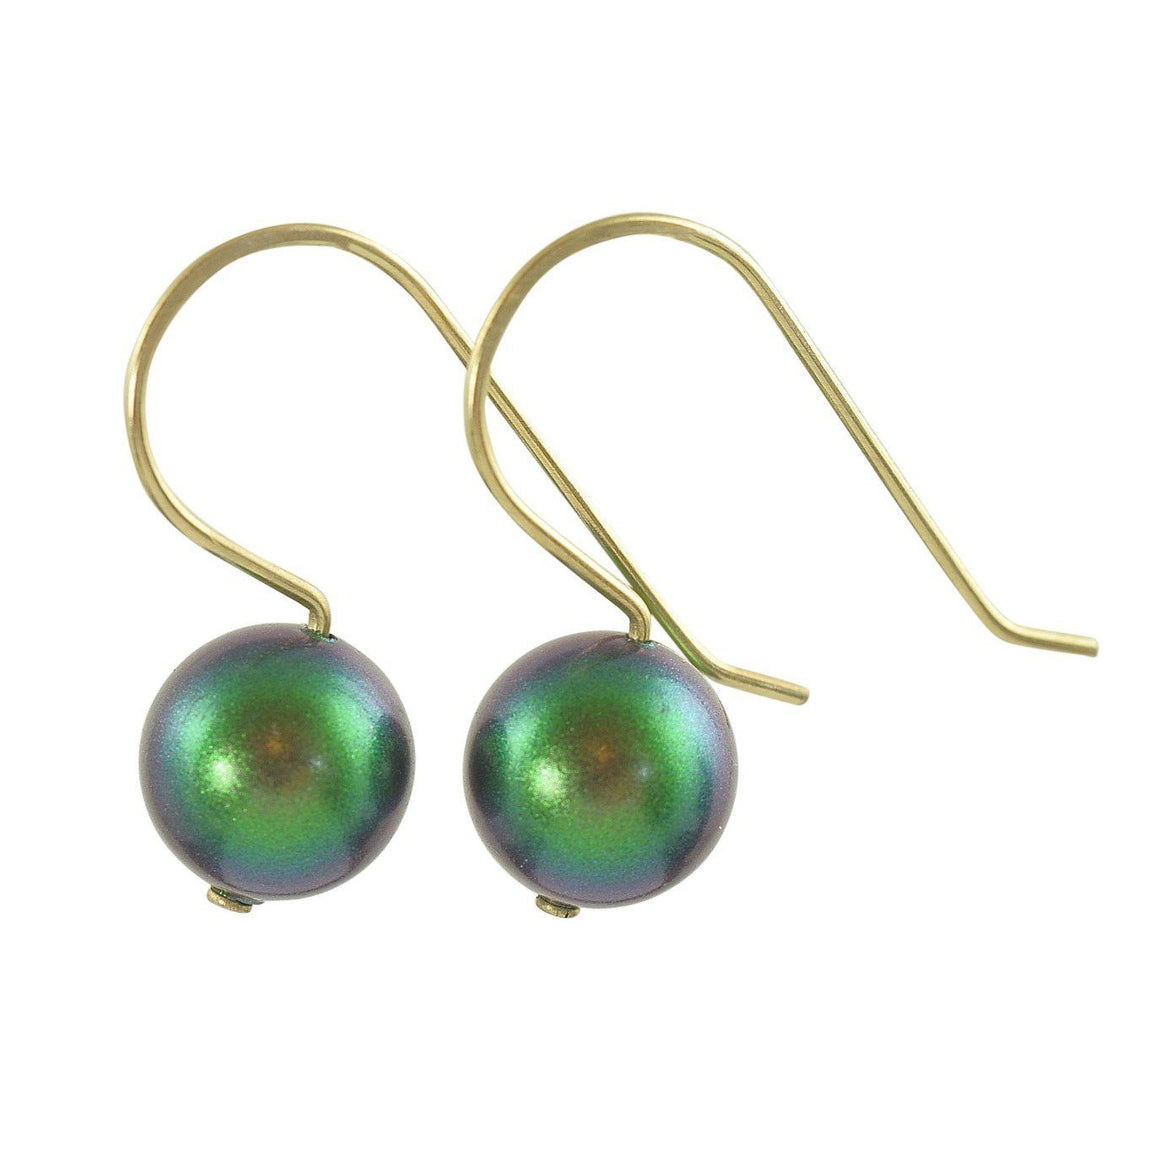 Swarovski earrings in Emerald